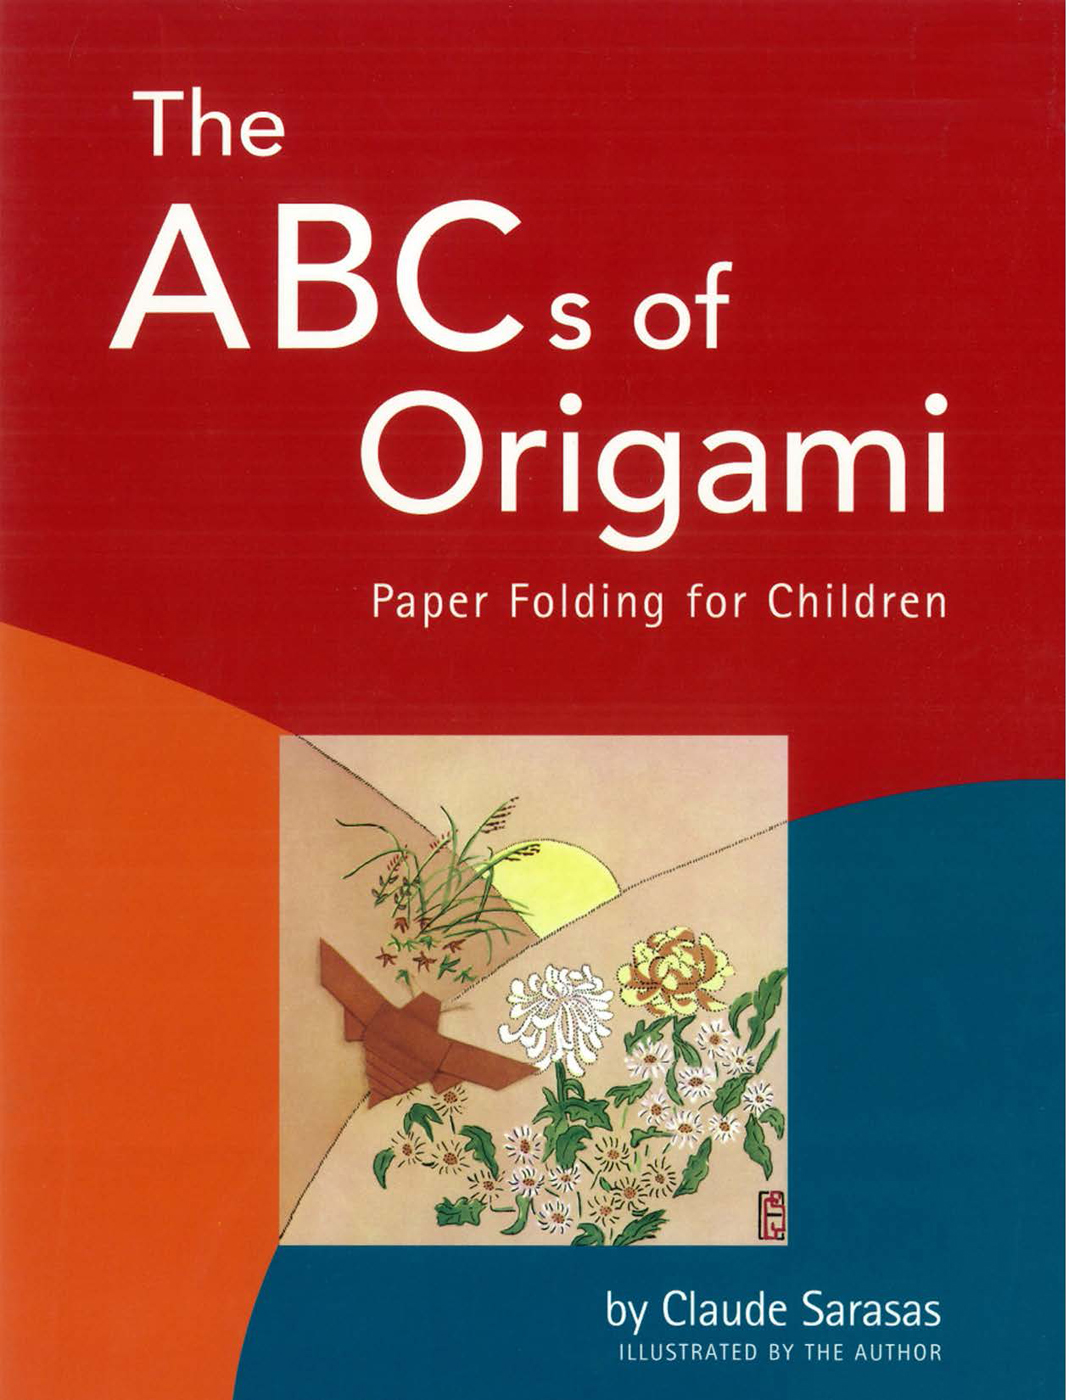 The ABC's of Origami By: Claude Sarasas